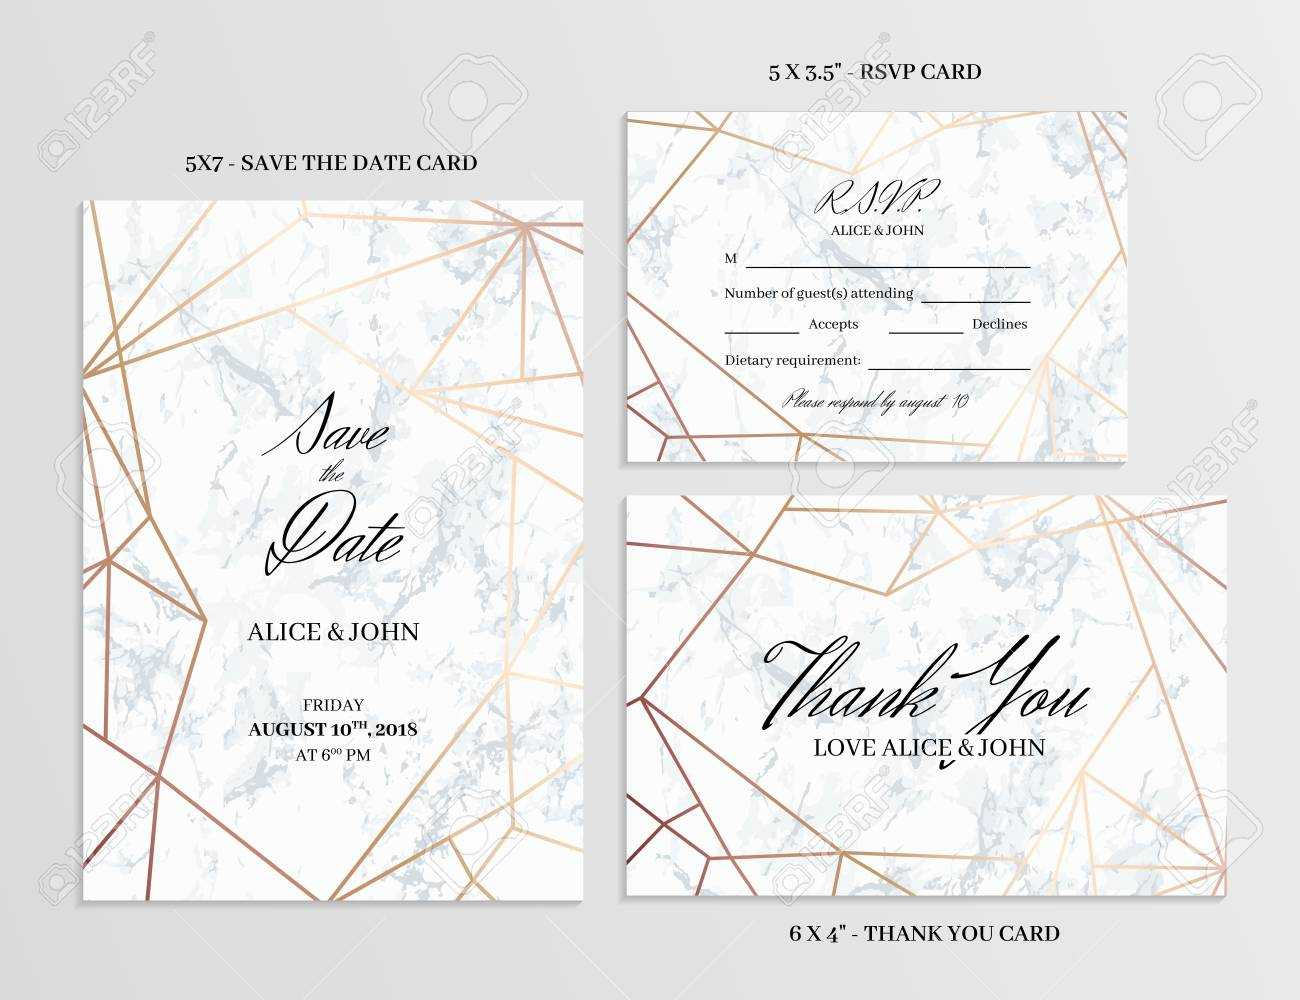 006 Wedding Set Save The Date Thank You And R S V P Cards With Template For Rsvp Cards For Wedding